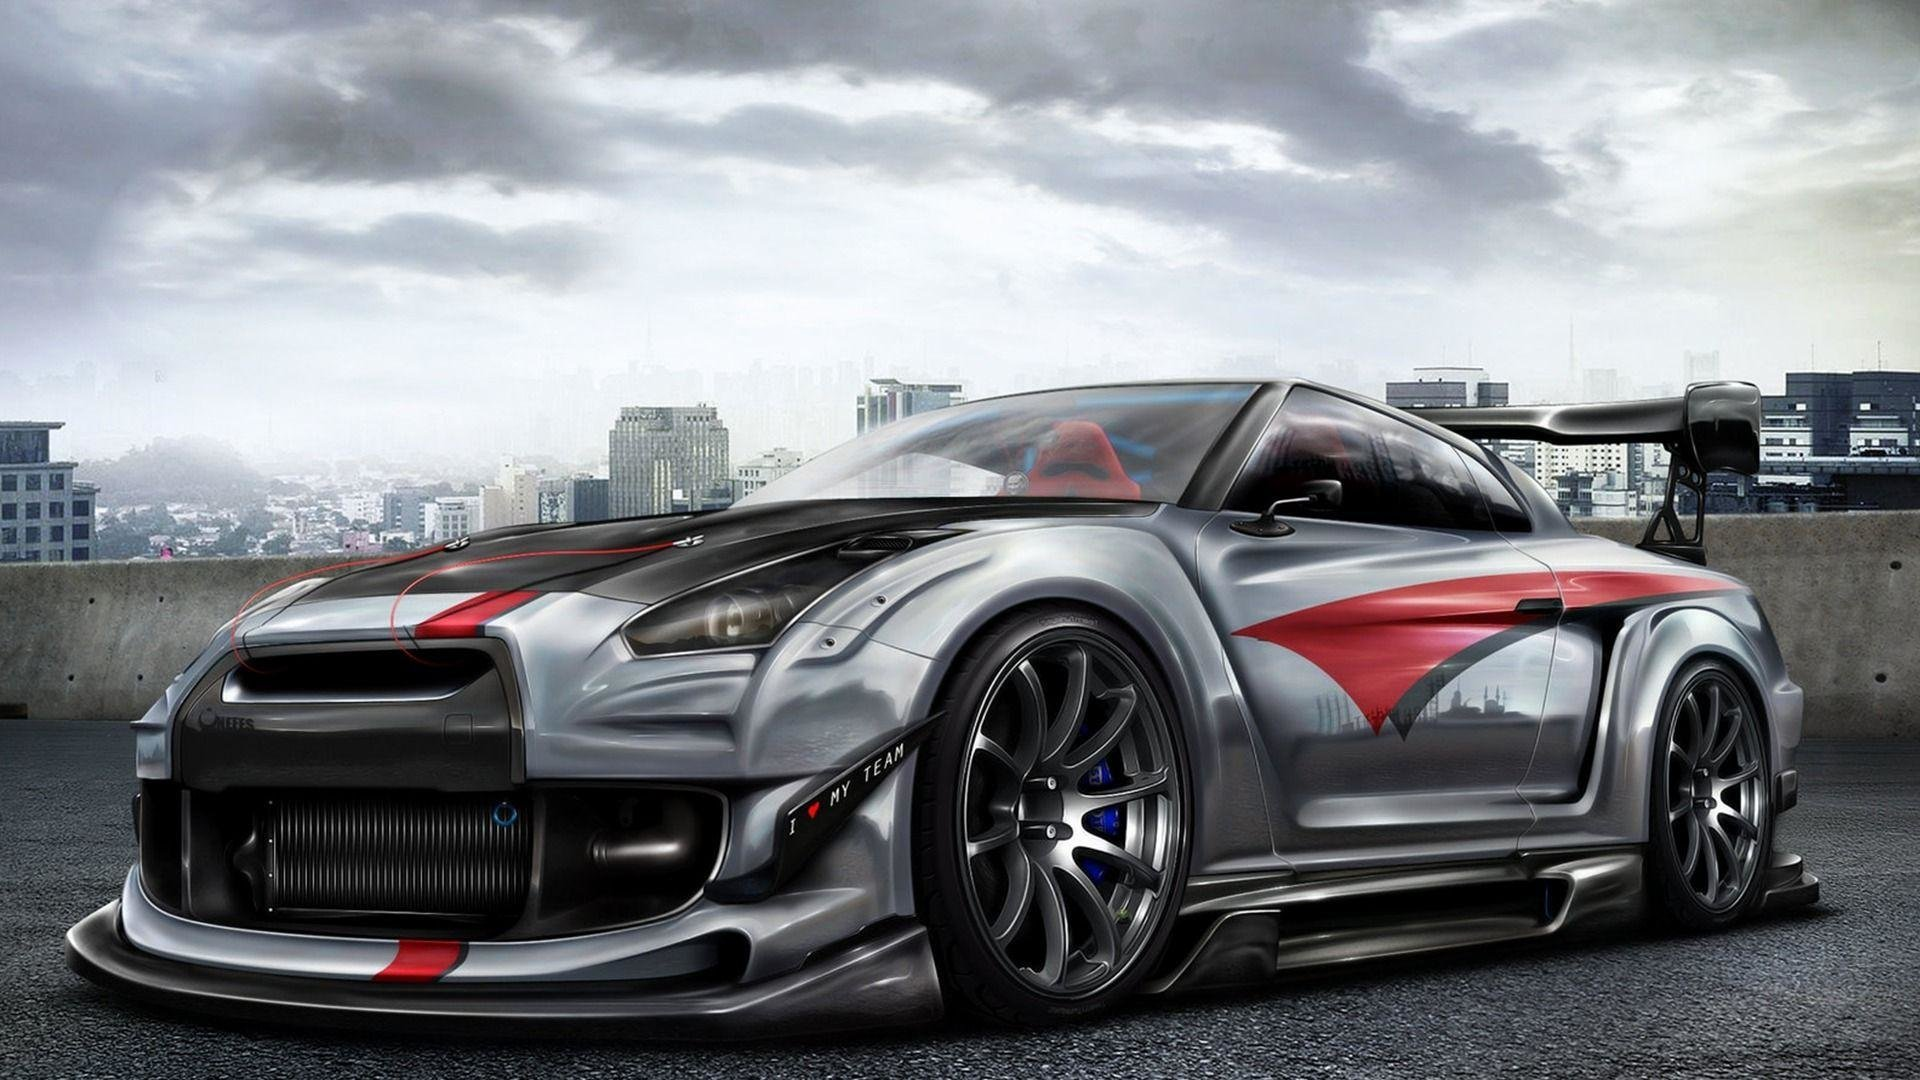 Latest Nissan Gtr R35 Wallpapers Wallpaper Cave Free Download